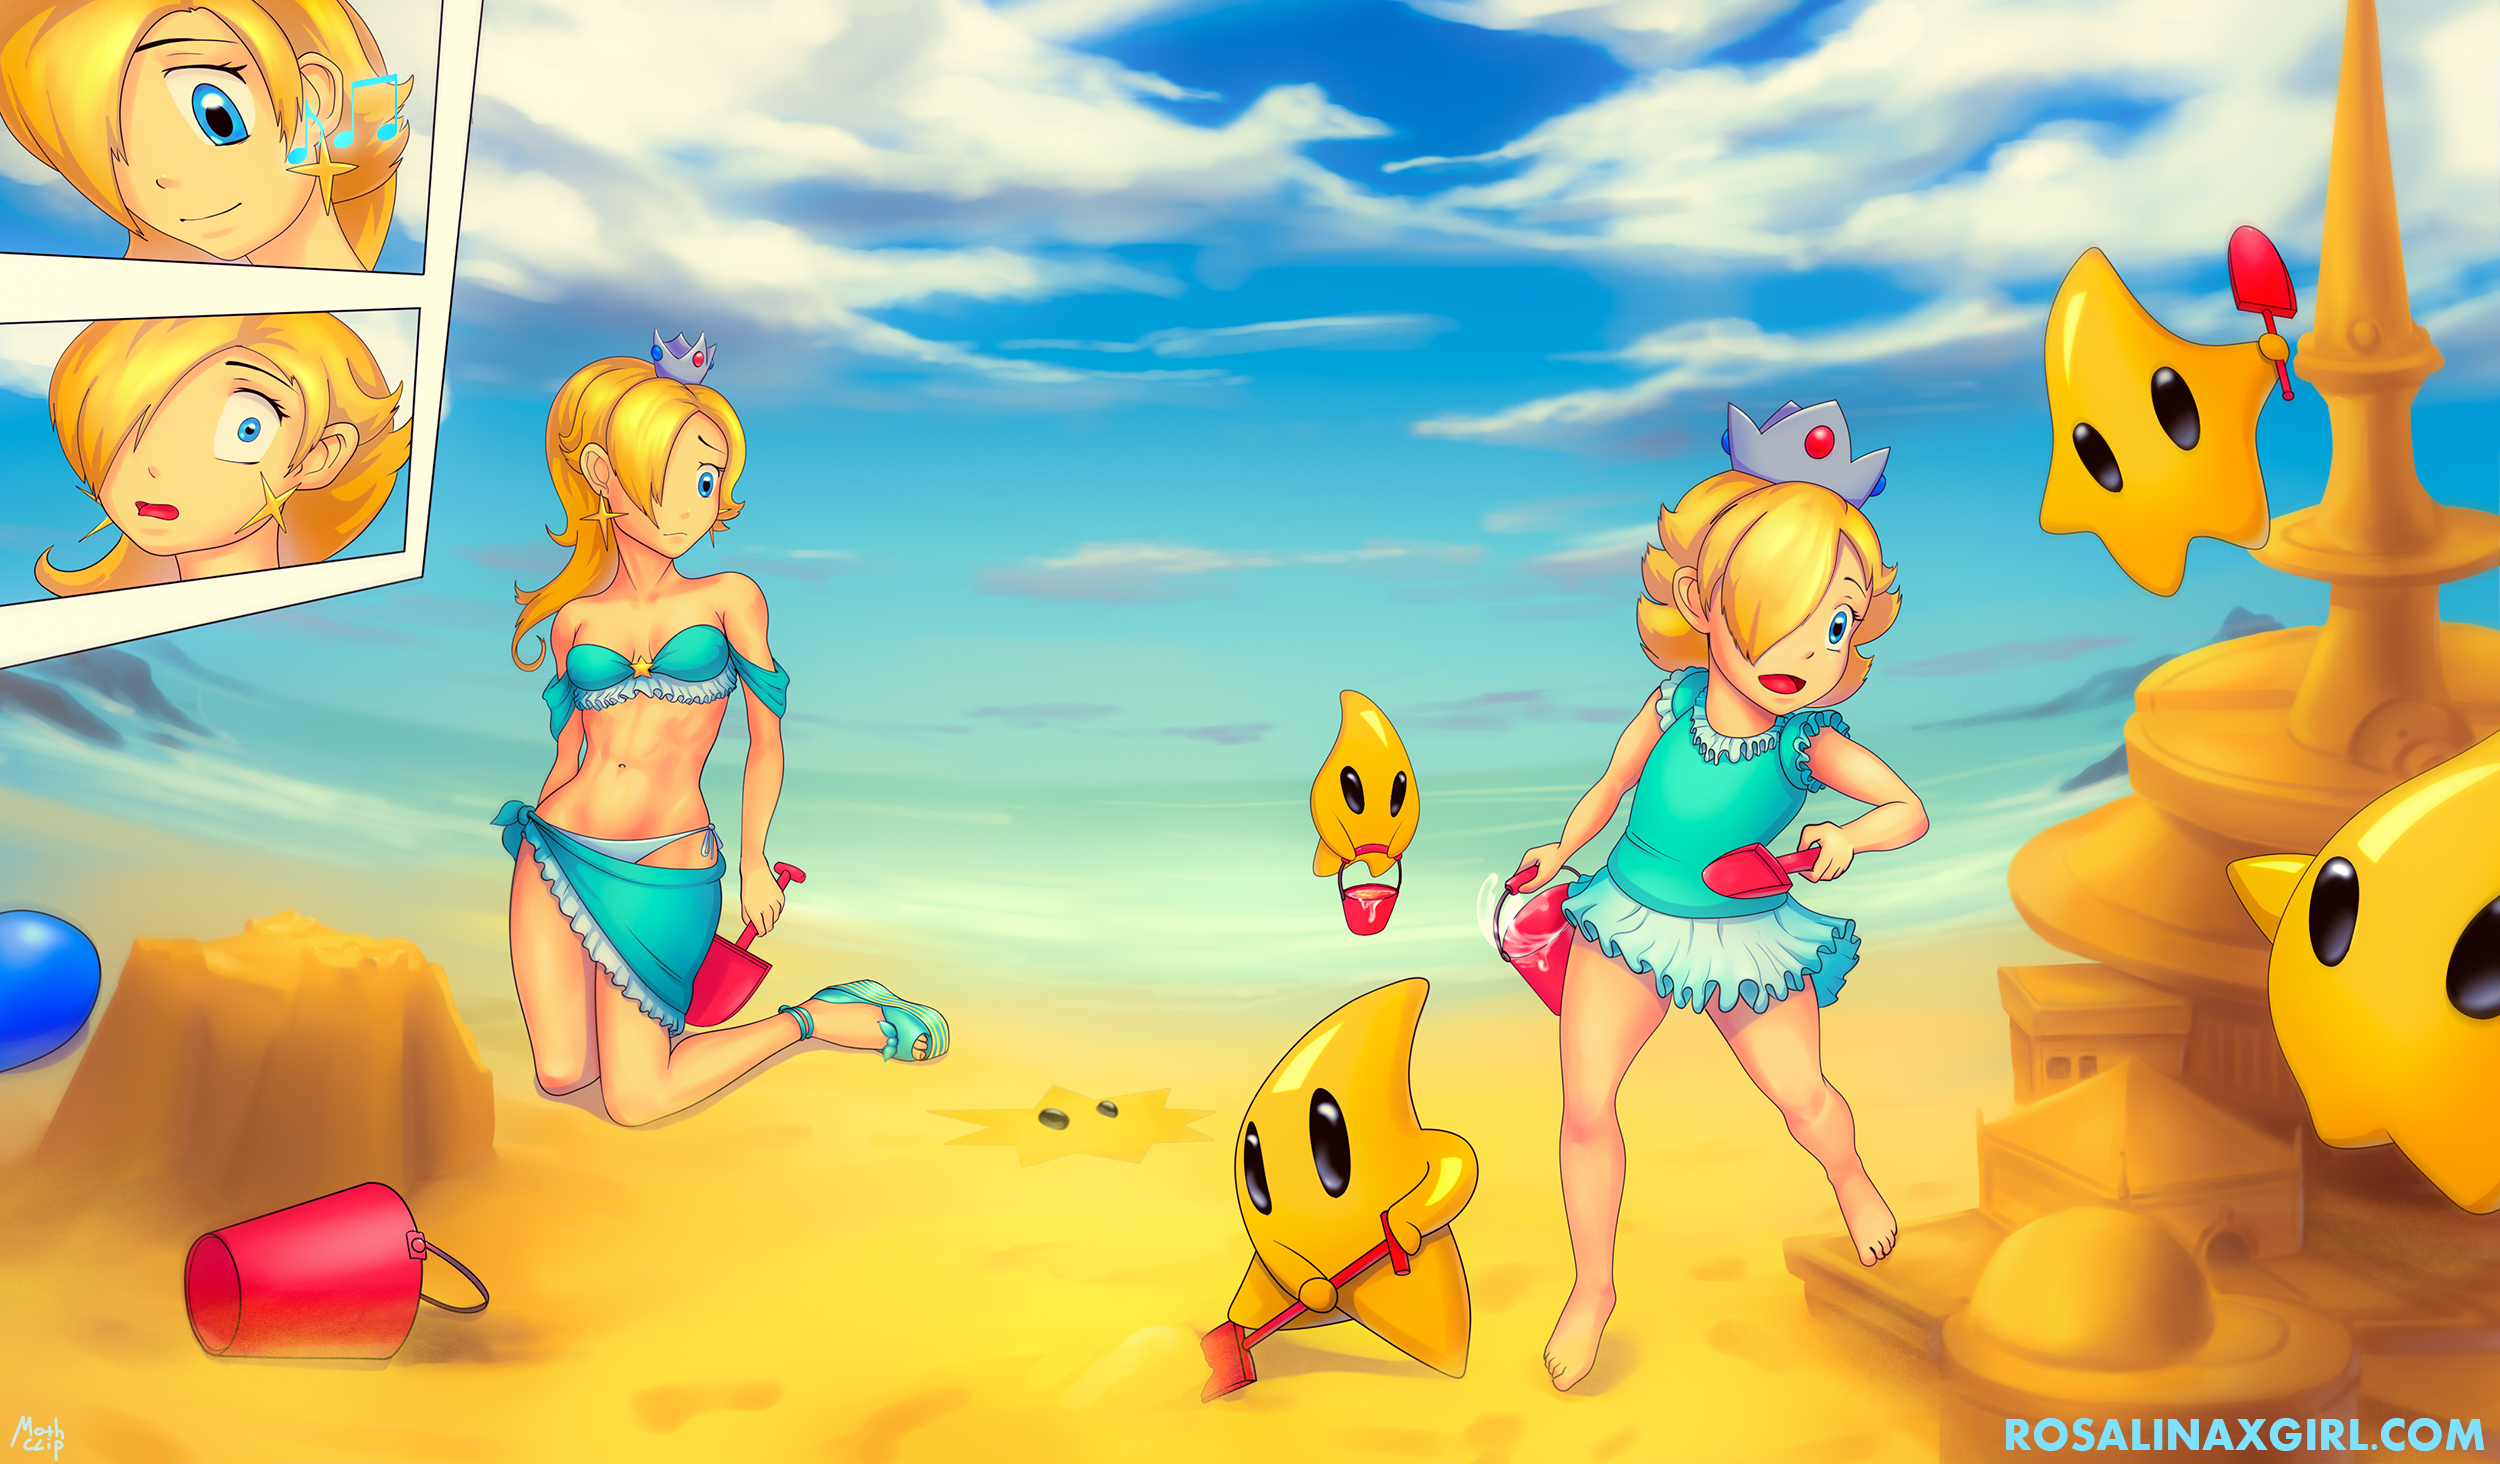 princess baby Rosalina nintendo luma beach summer sandastle walllpaper cute